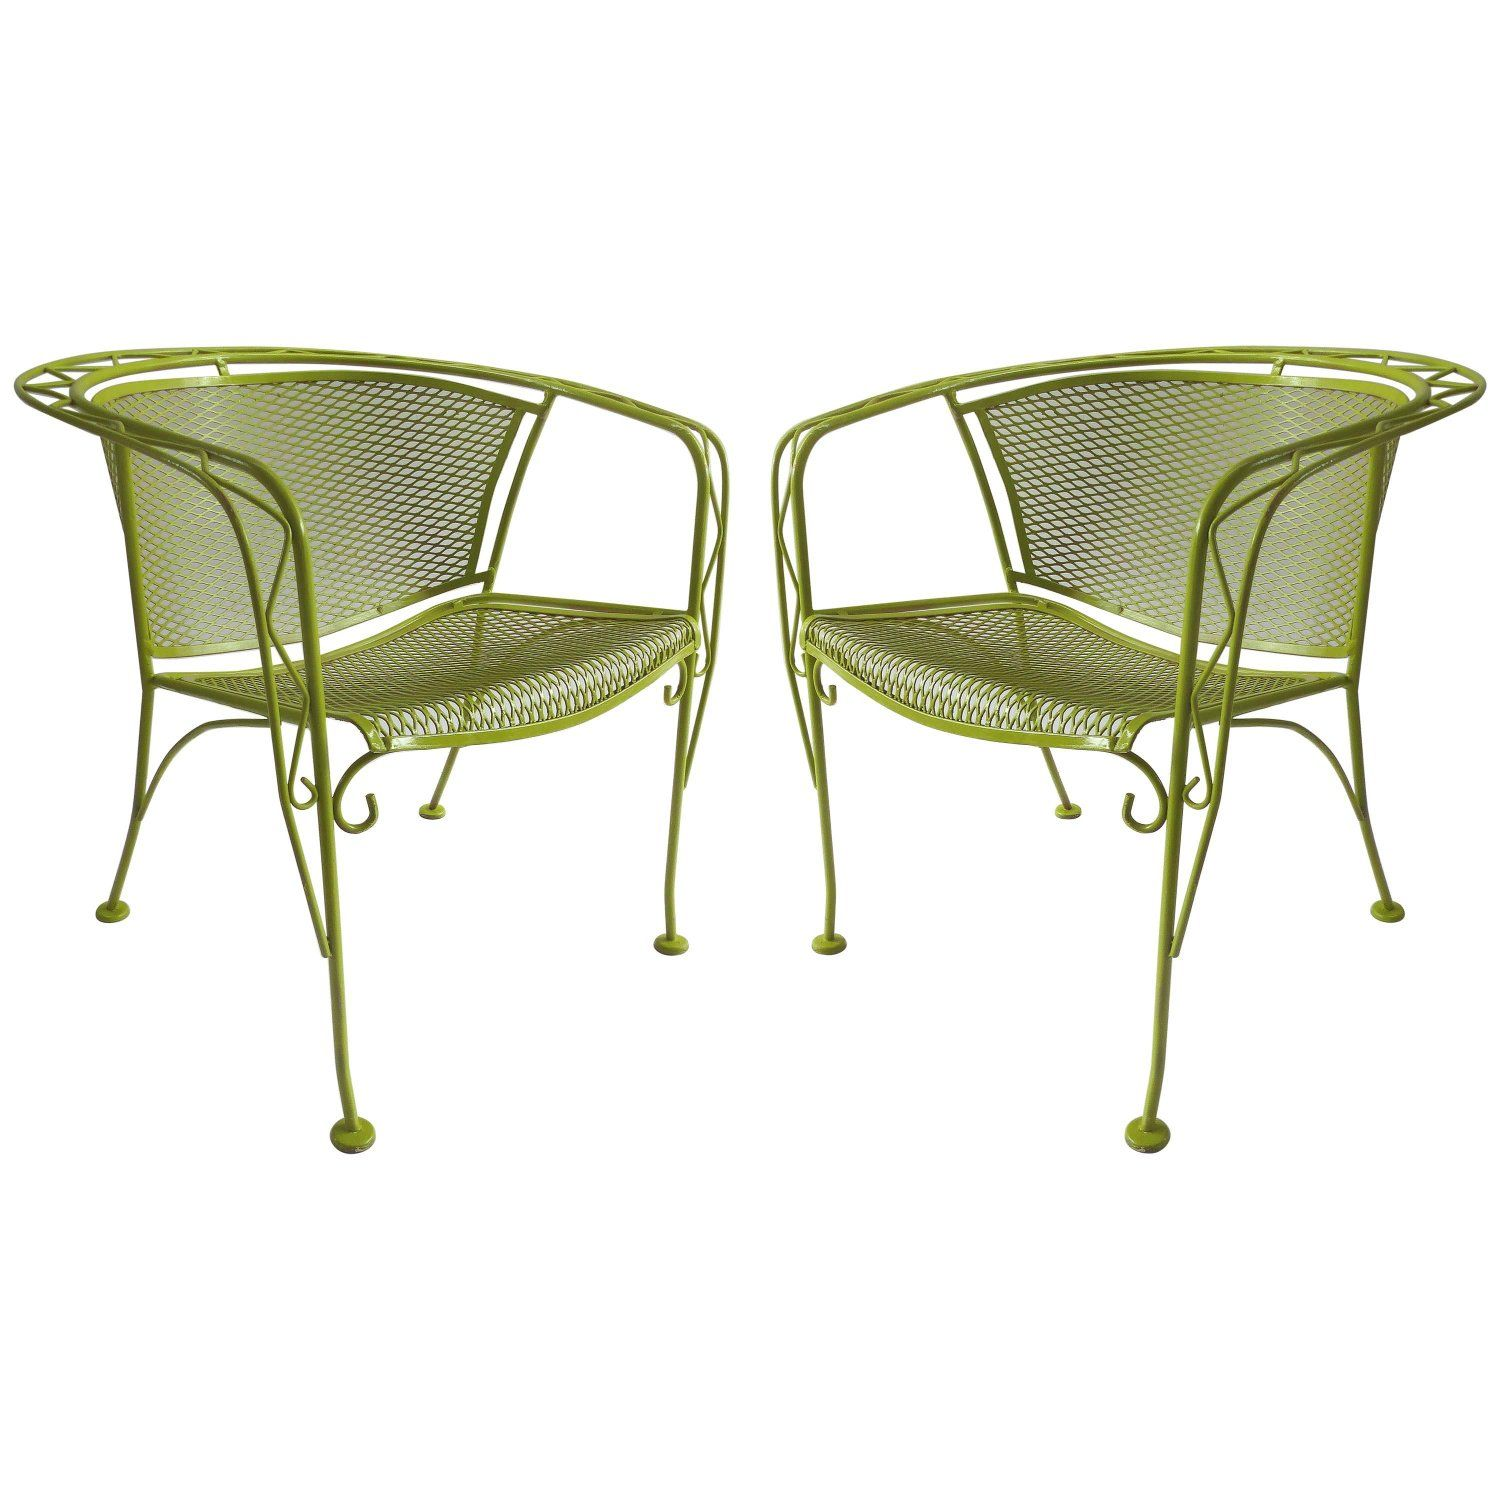 Mid-Century Modern Pair of Iron Garden Chairs by Tempestini for